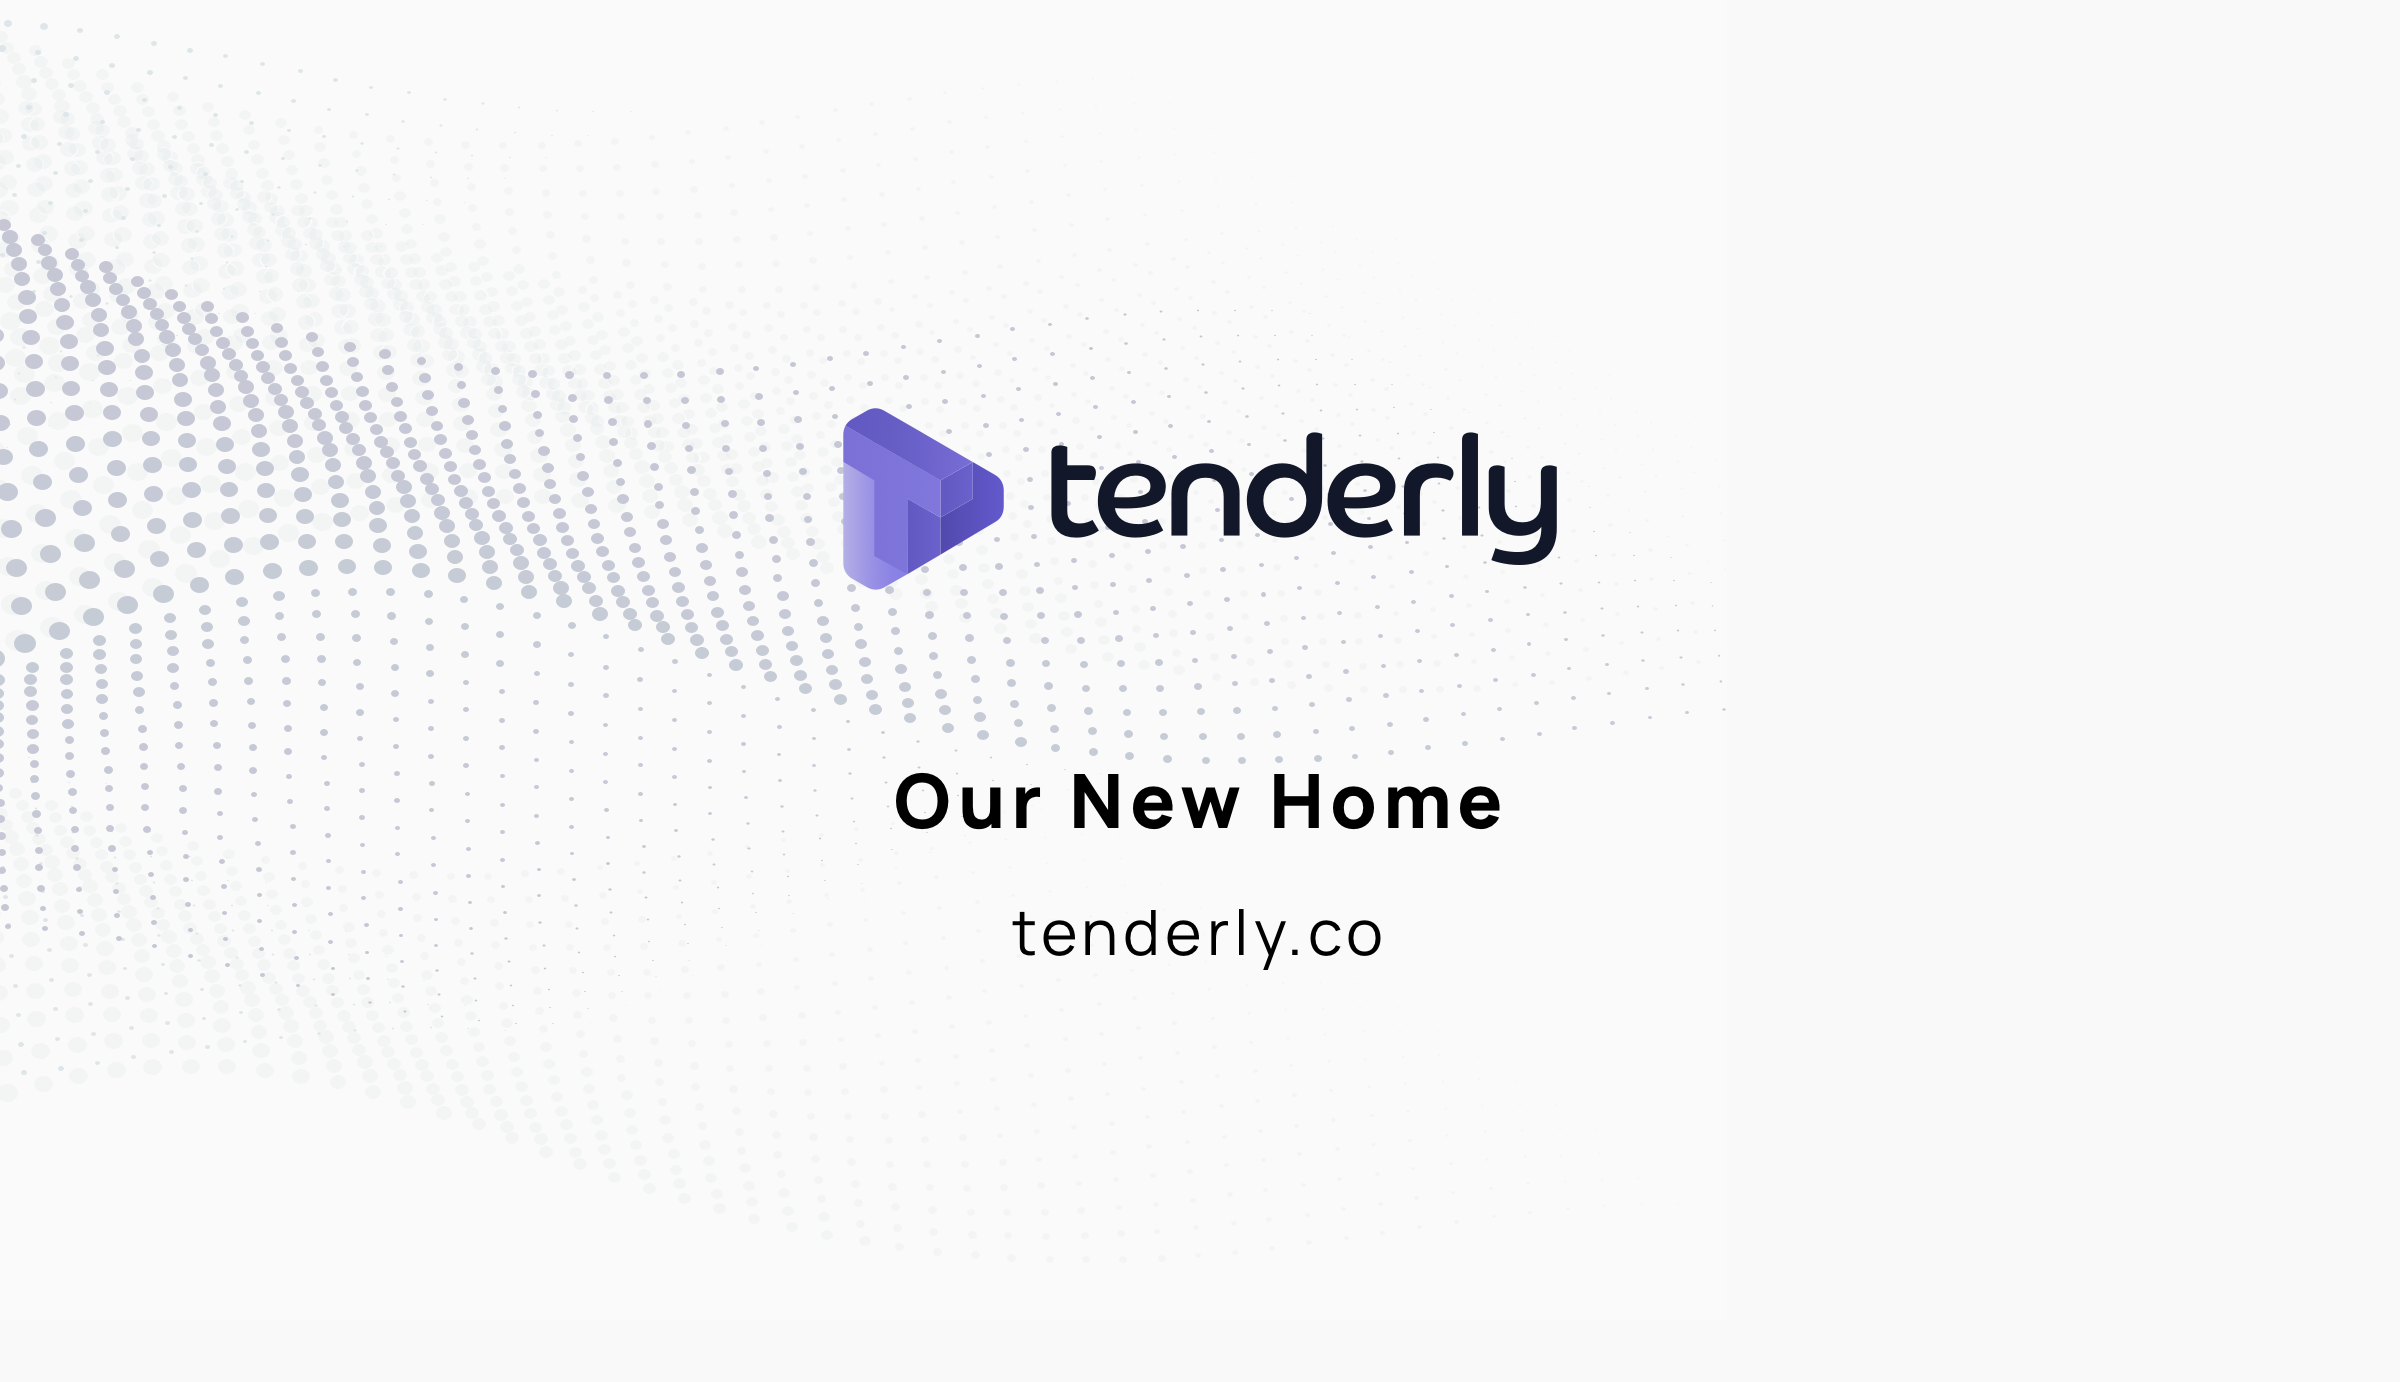 More than a dev tool: Tenderly has a new home